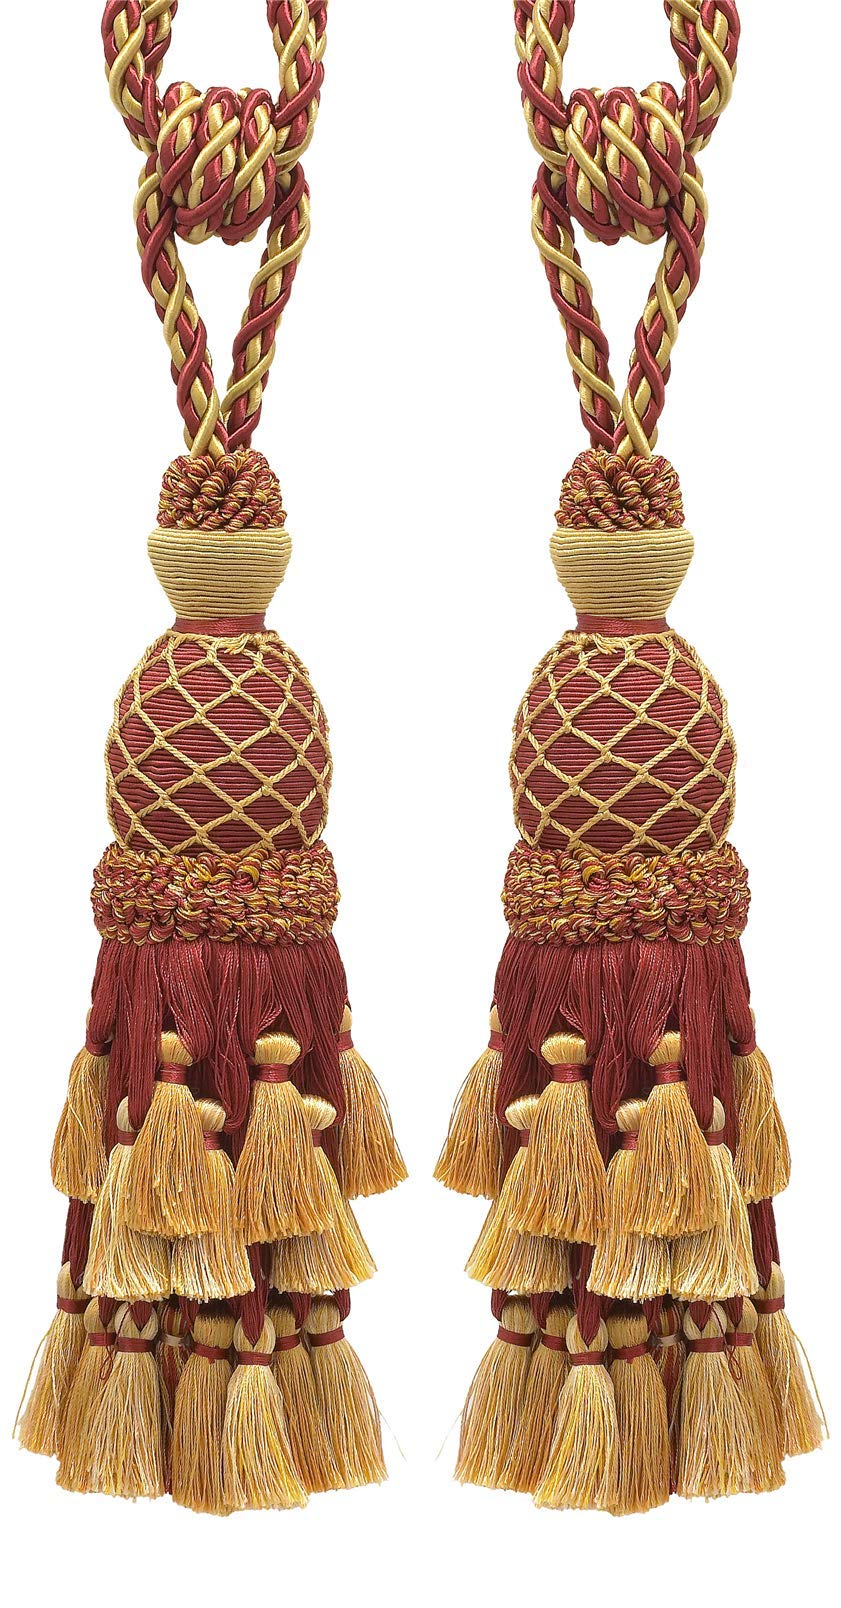 Pair of Lavish Burgundy Red, Gold Large Curtain & Drapery Tassel Tieback/Large 11'' Tassel, 34'' Spread(Embrace) 7/16'' Cord, Imperial II Collection Style# TBIL-1 Color: Burgundy Gold - 1253 by DecoPro